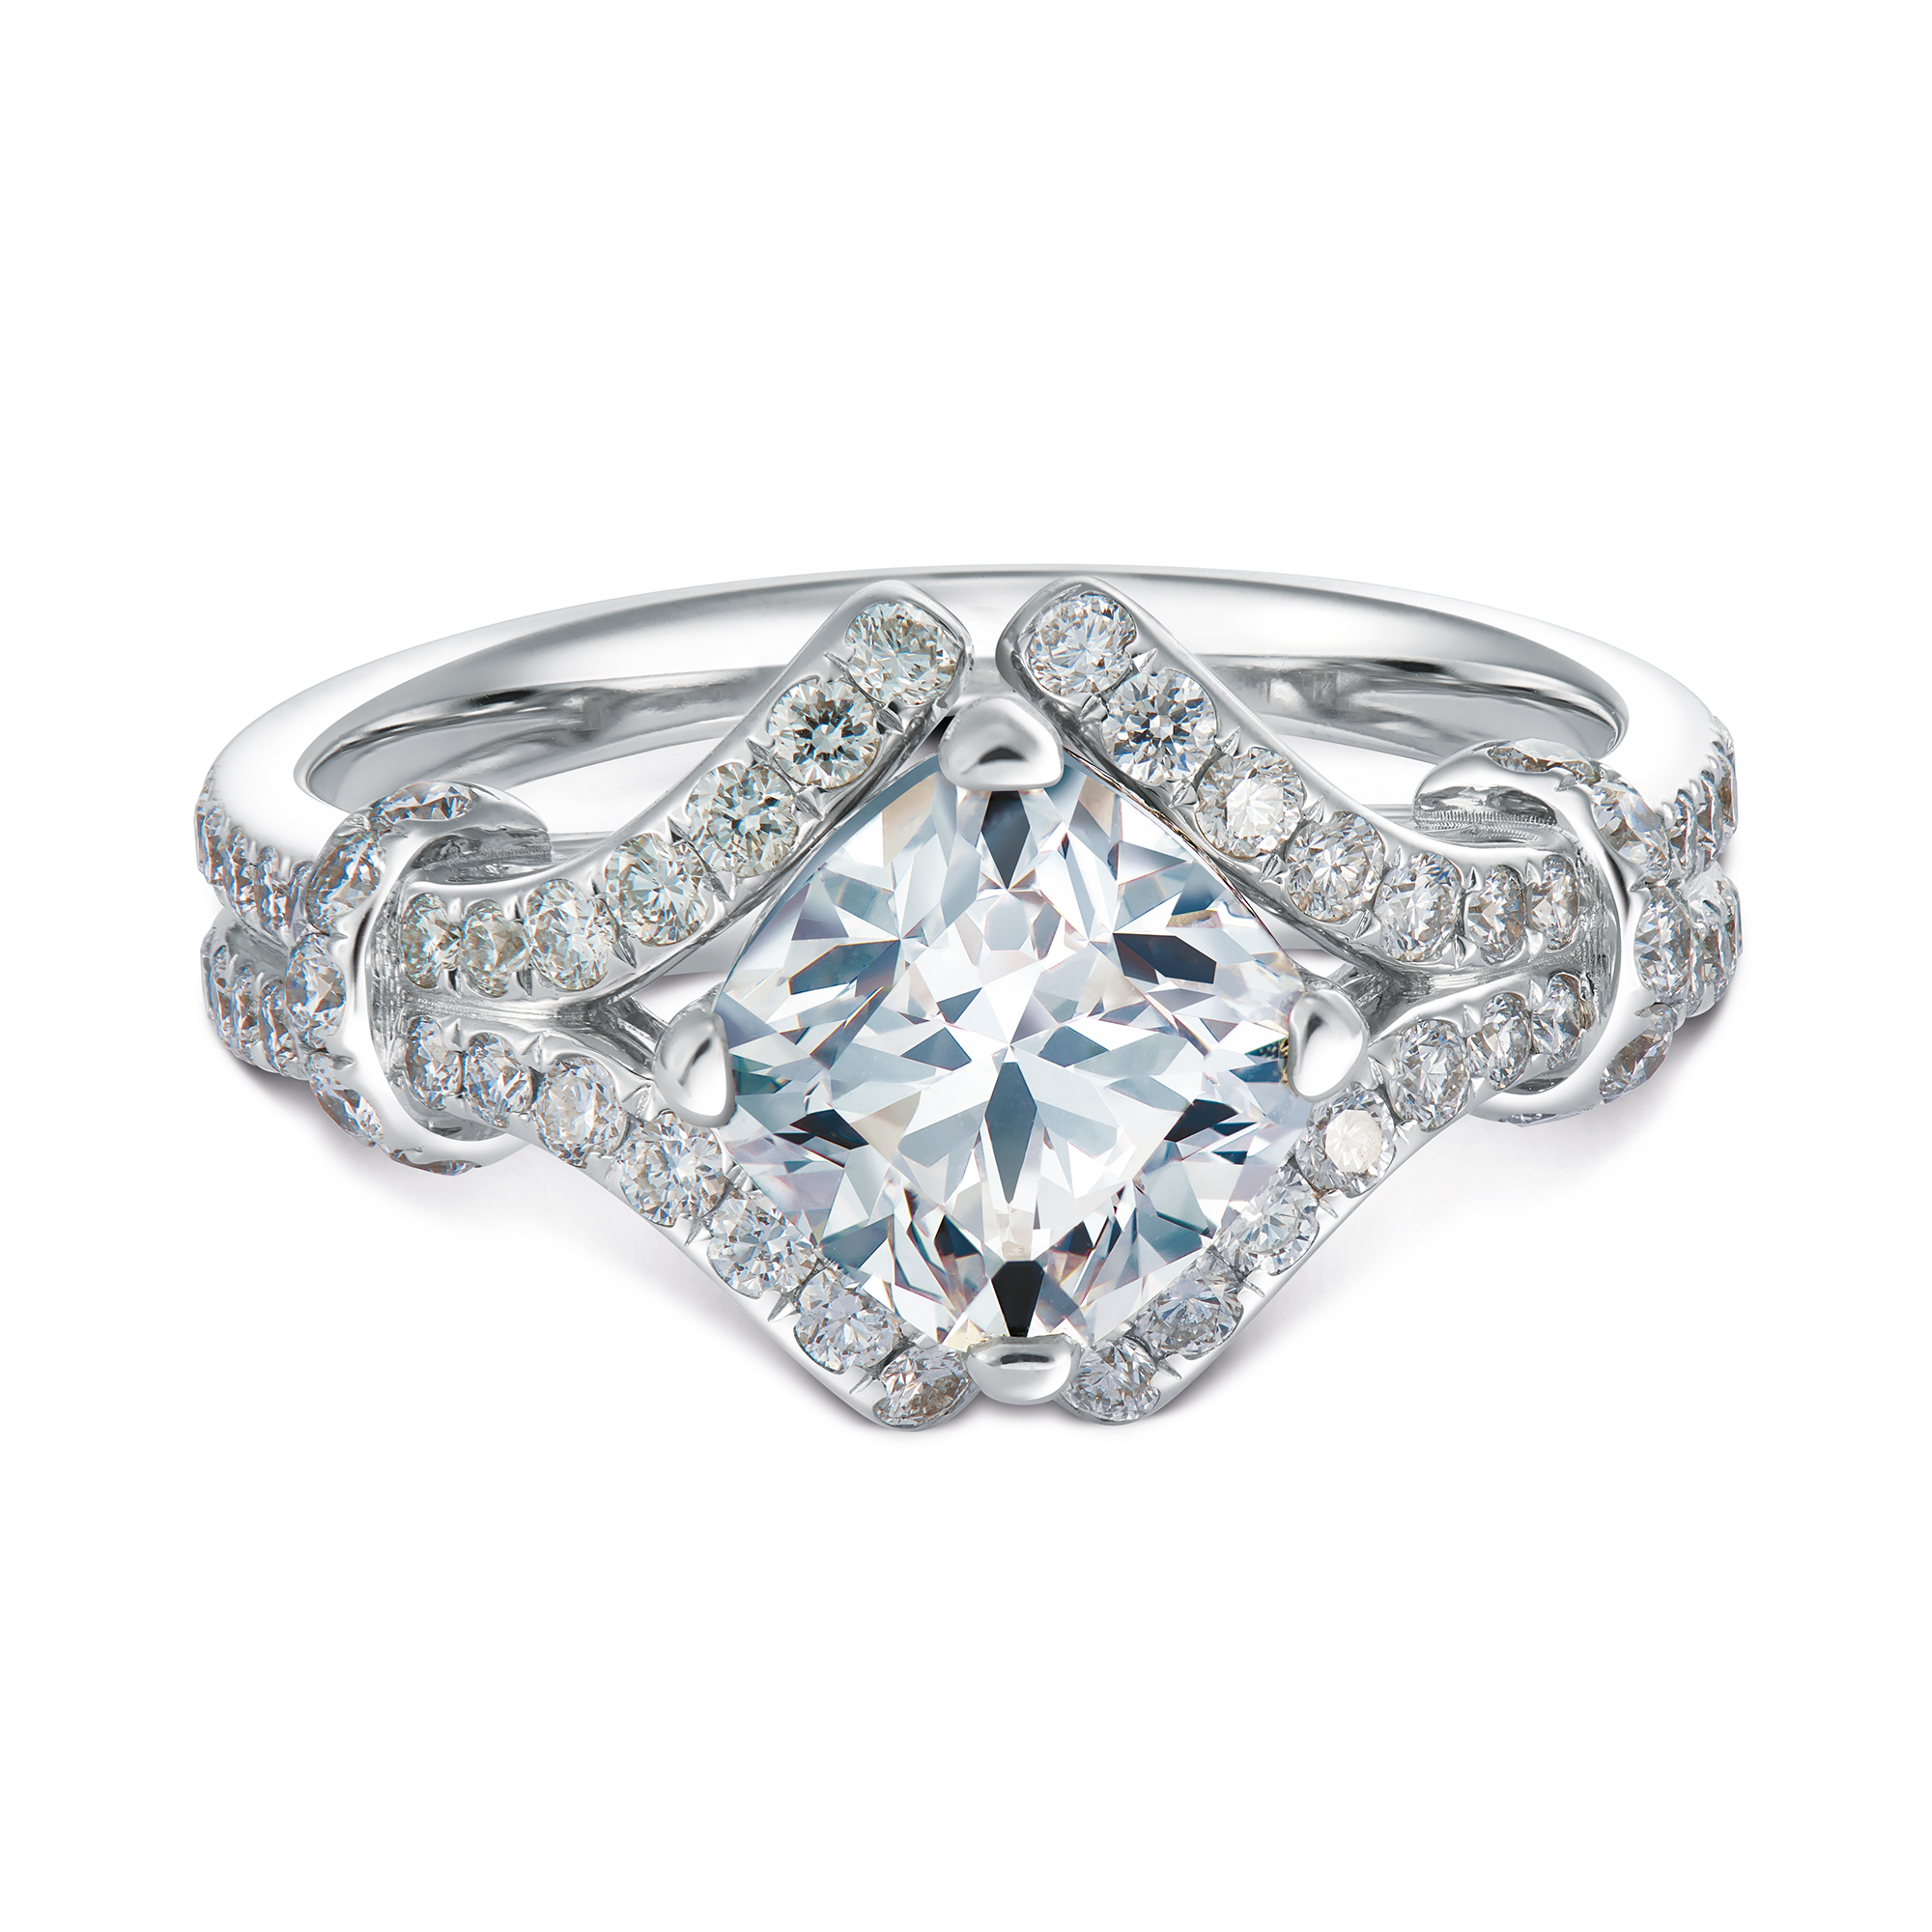 Imperiale for Forevermark Pave Solitaire Diamond Ring